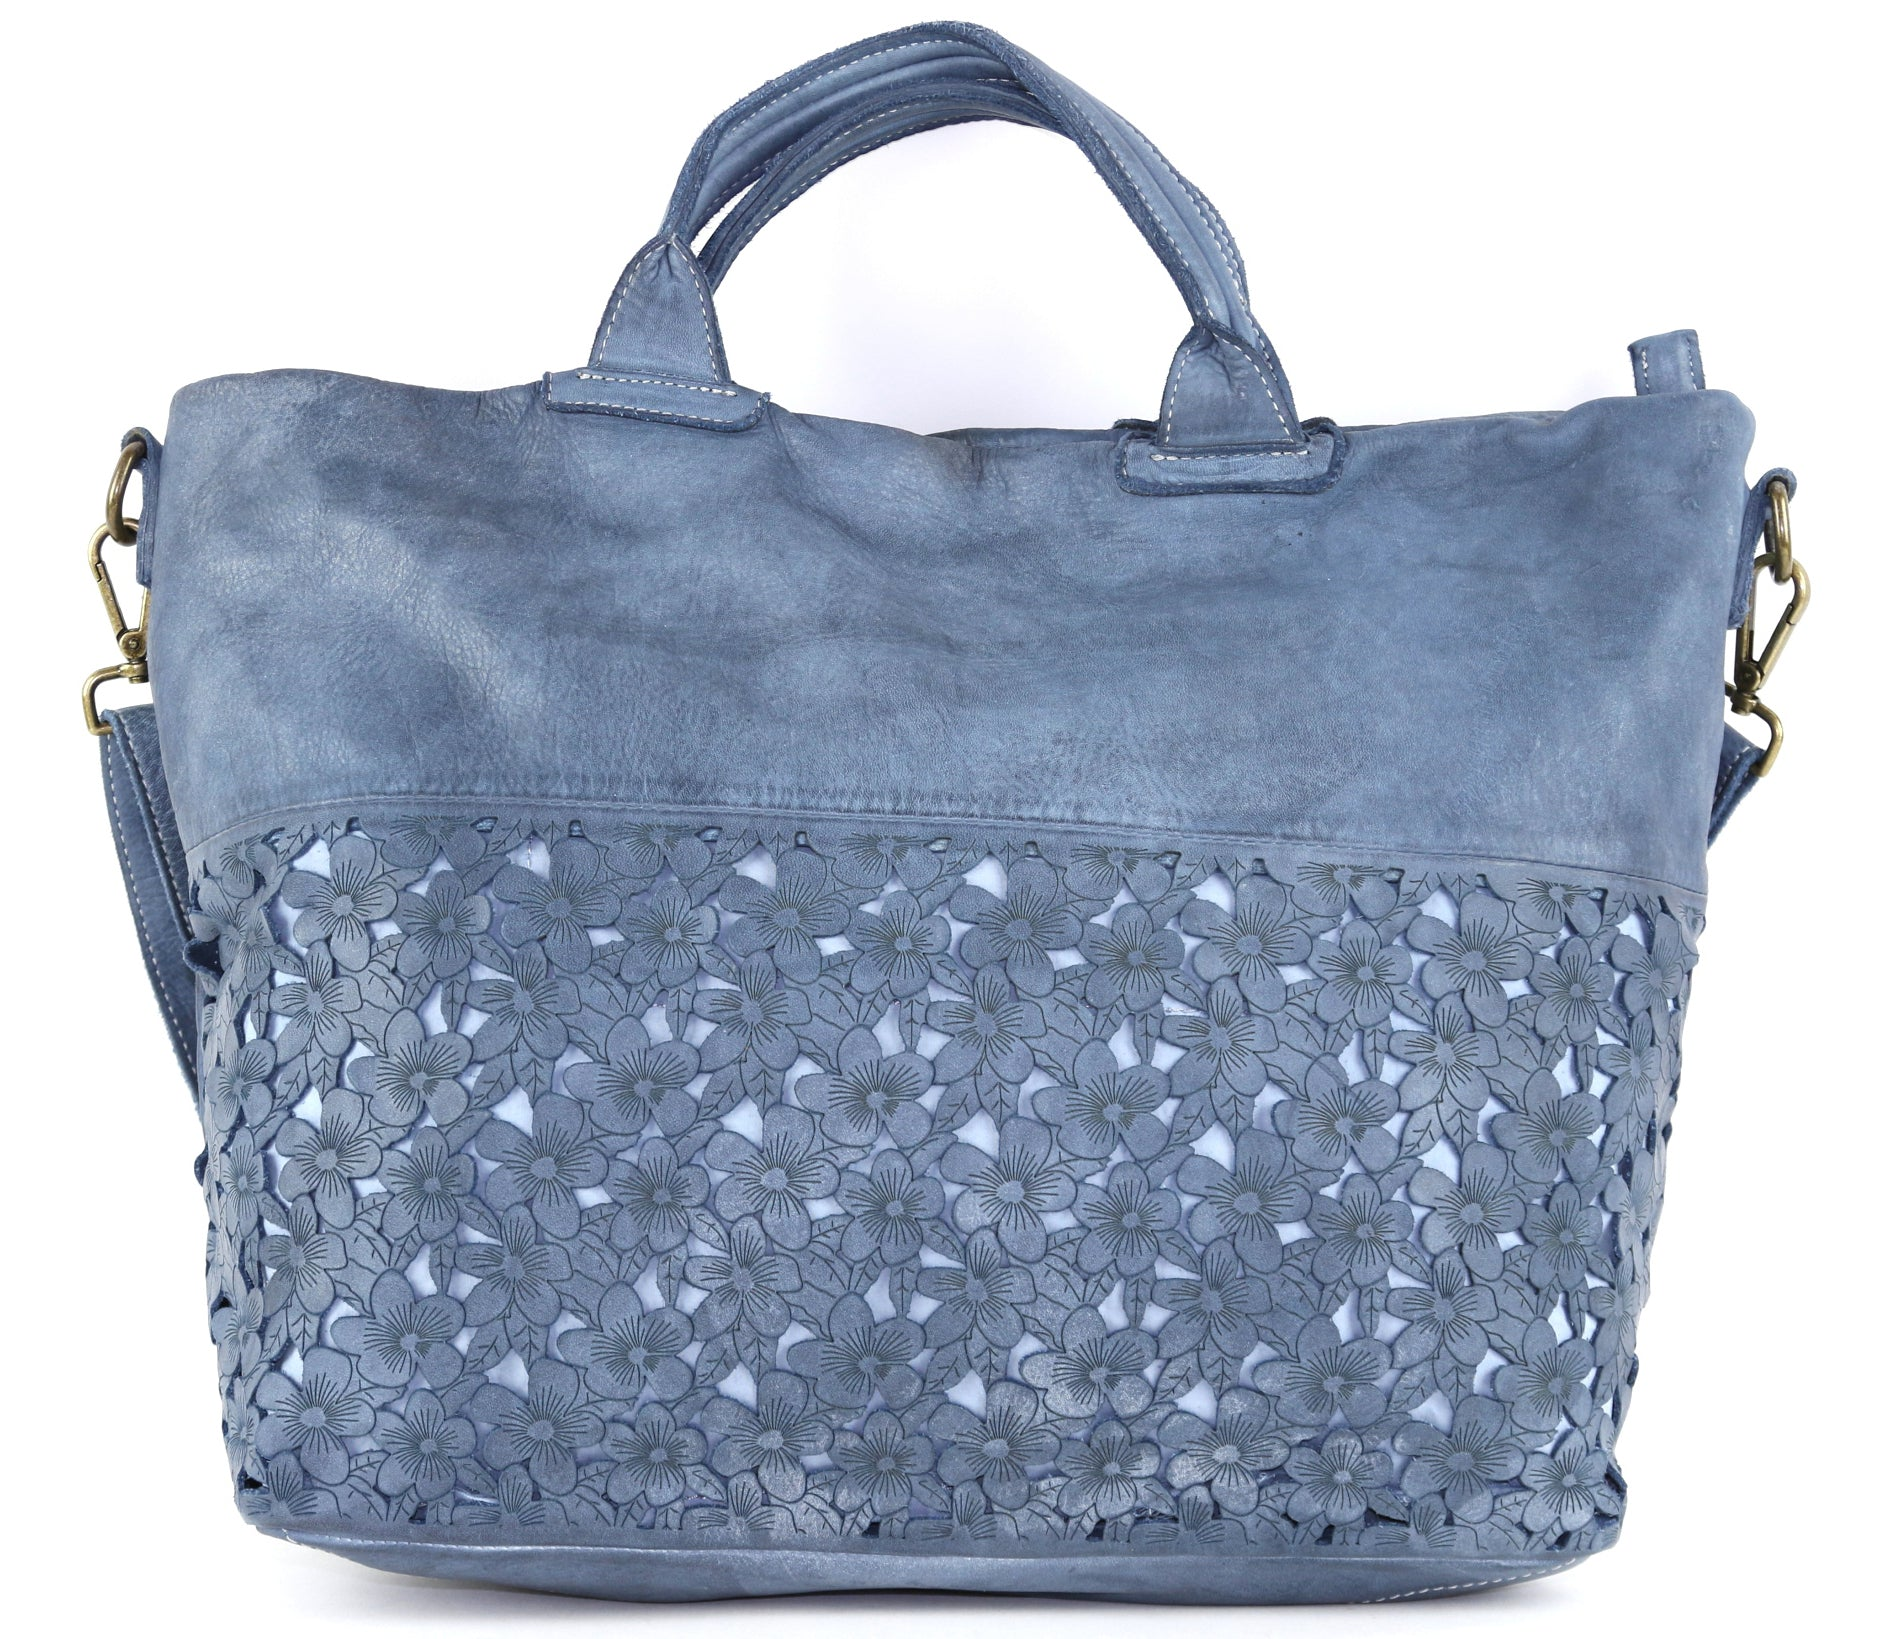 Rina Tote in denim